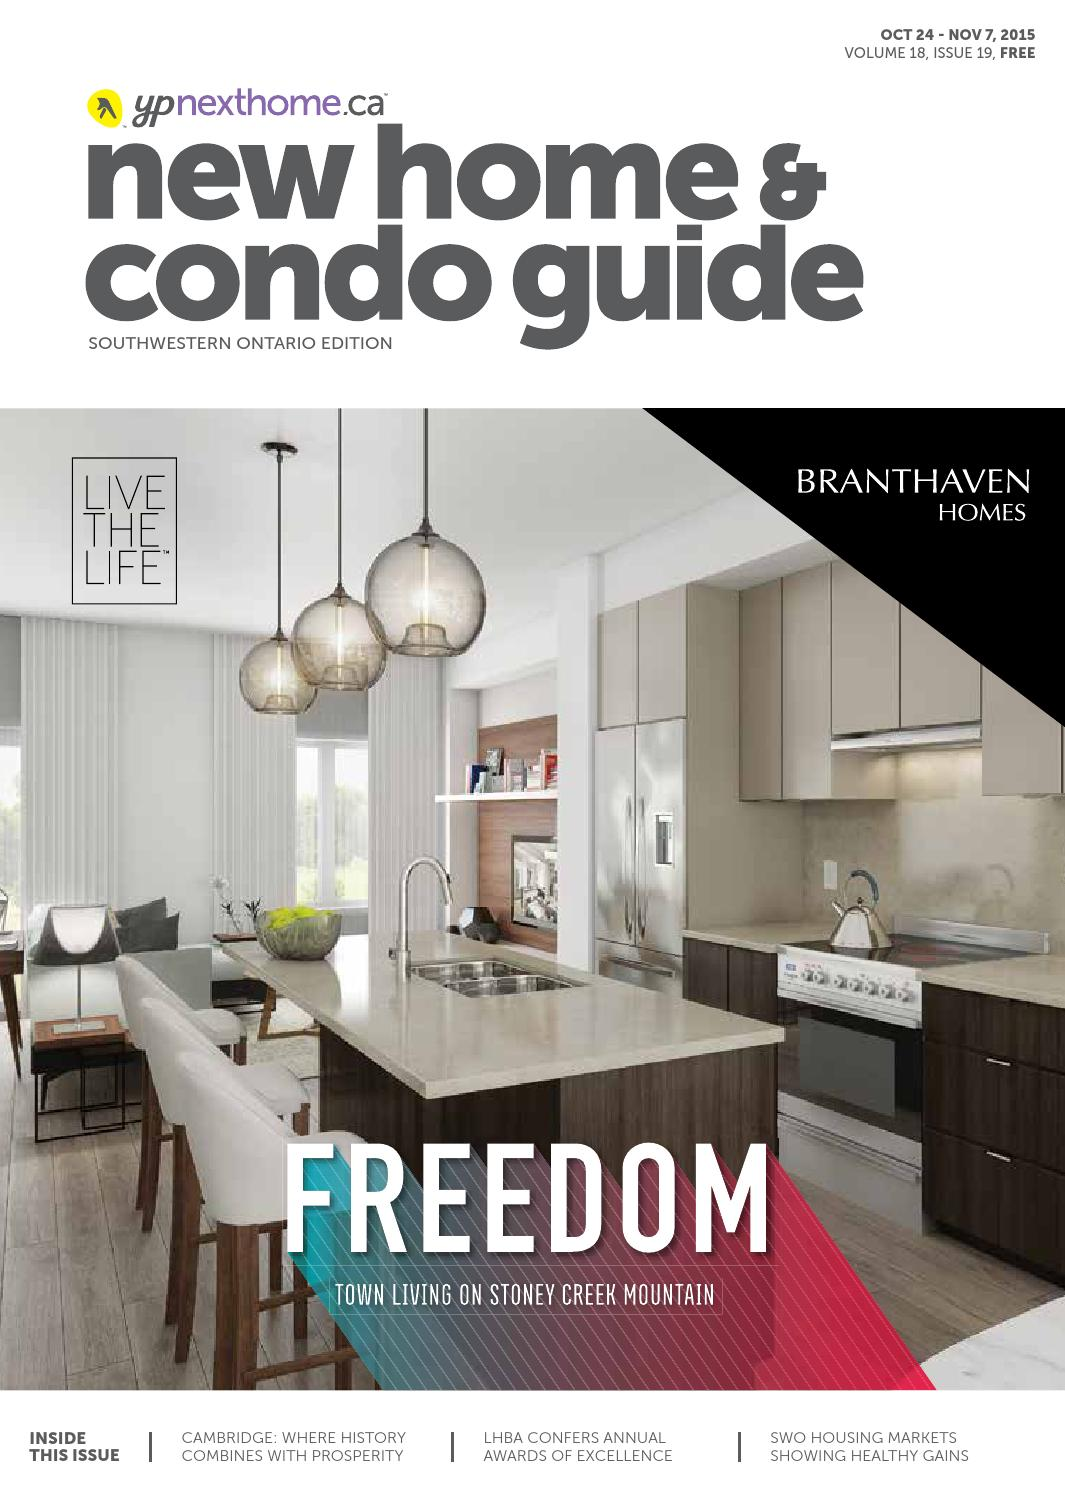 Southwestern Ontario New Home and Condo Guide - Oct 24, 2015 by ...